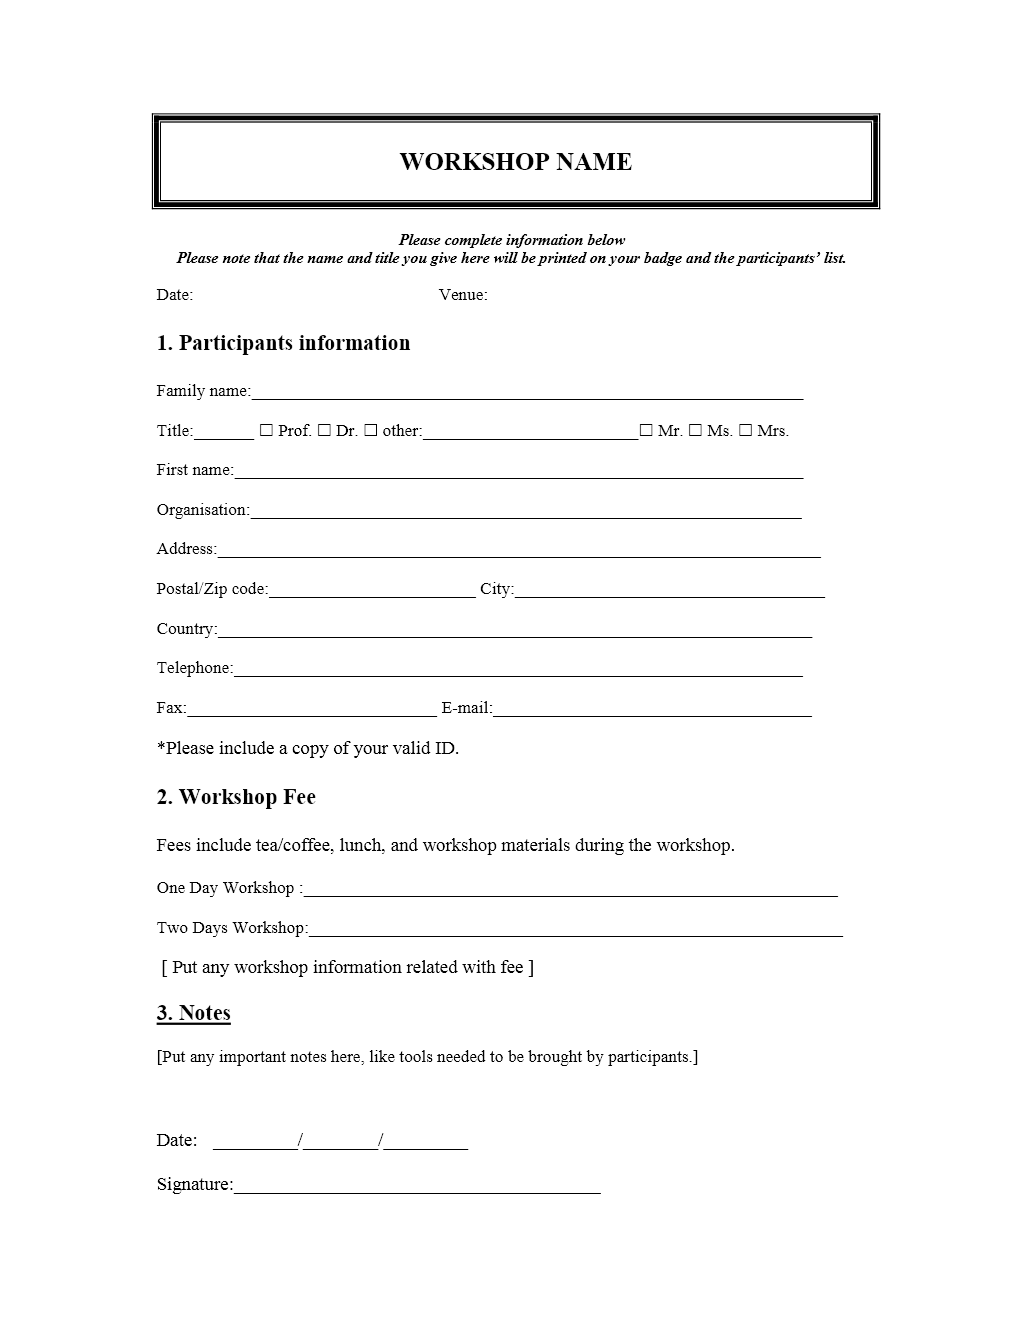 Registration Form Sample Archives Freewordtemplates